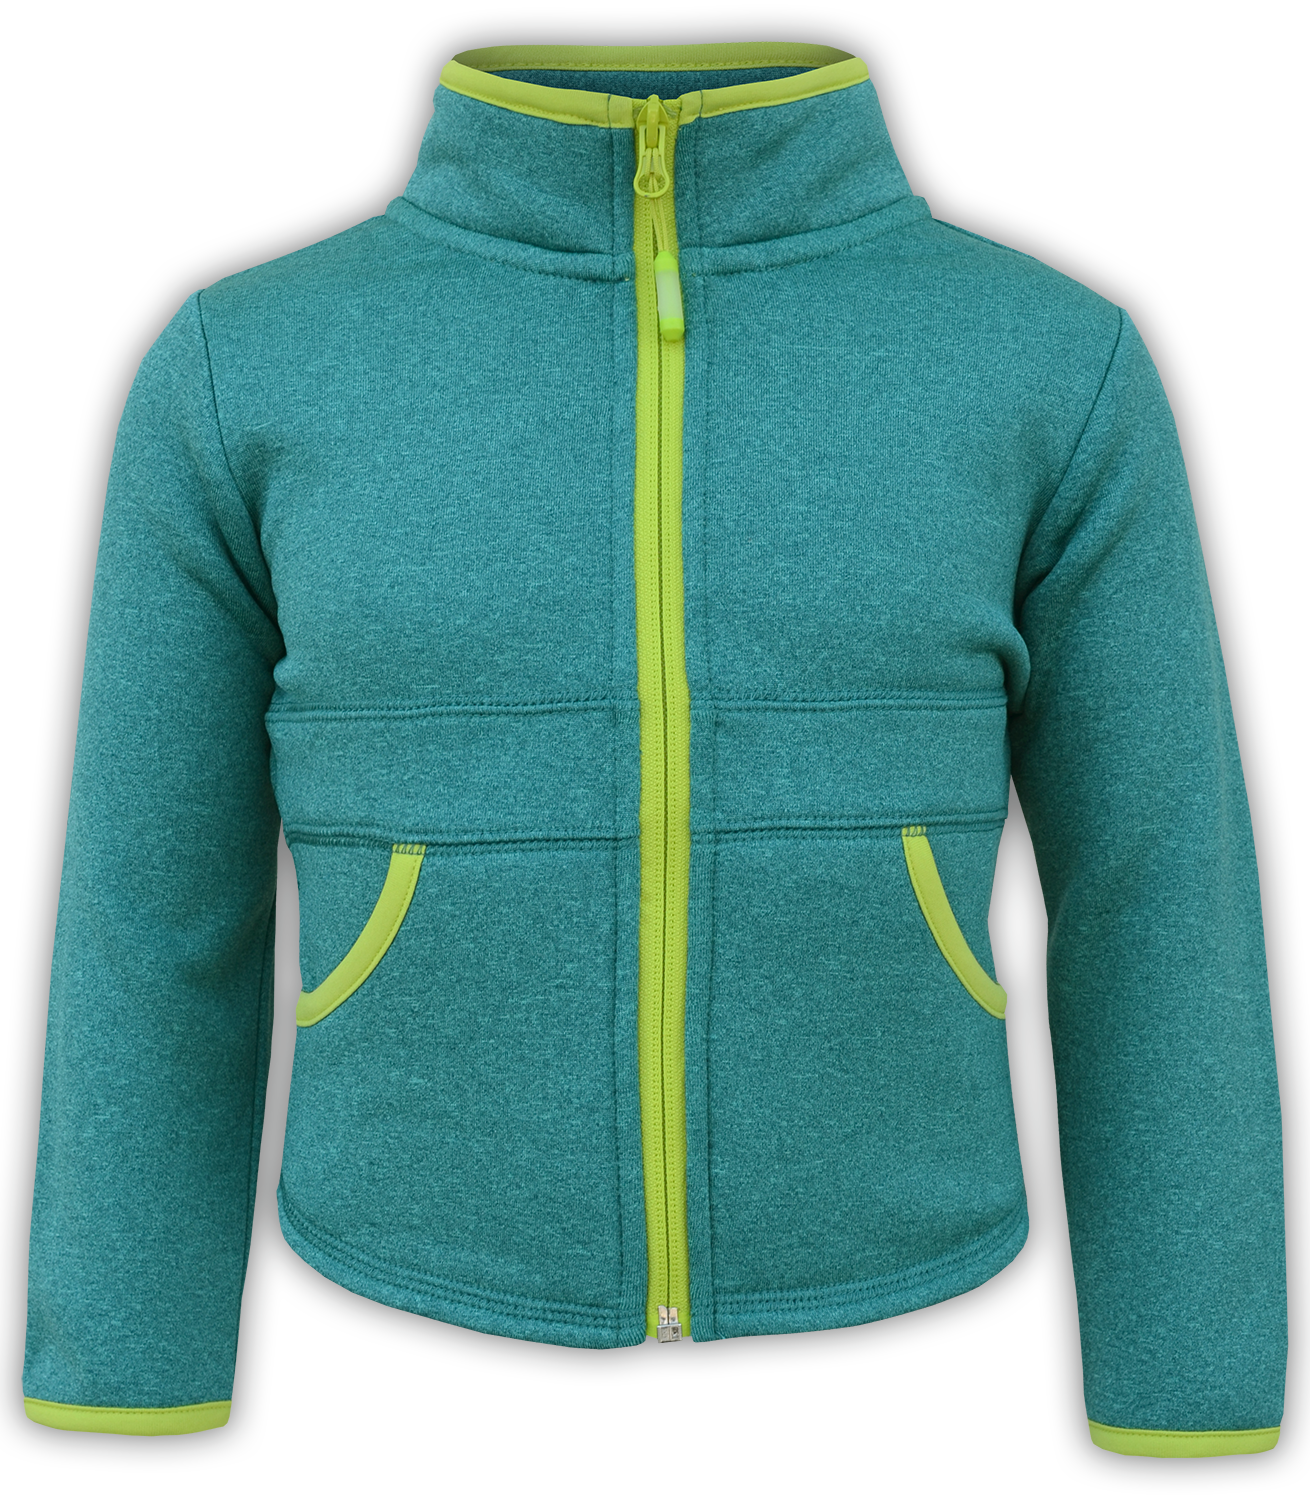 toddlers' loosely fitted jacket